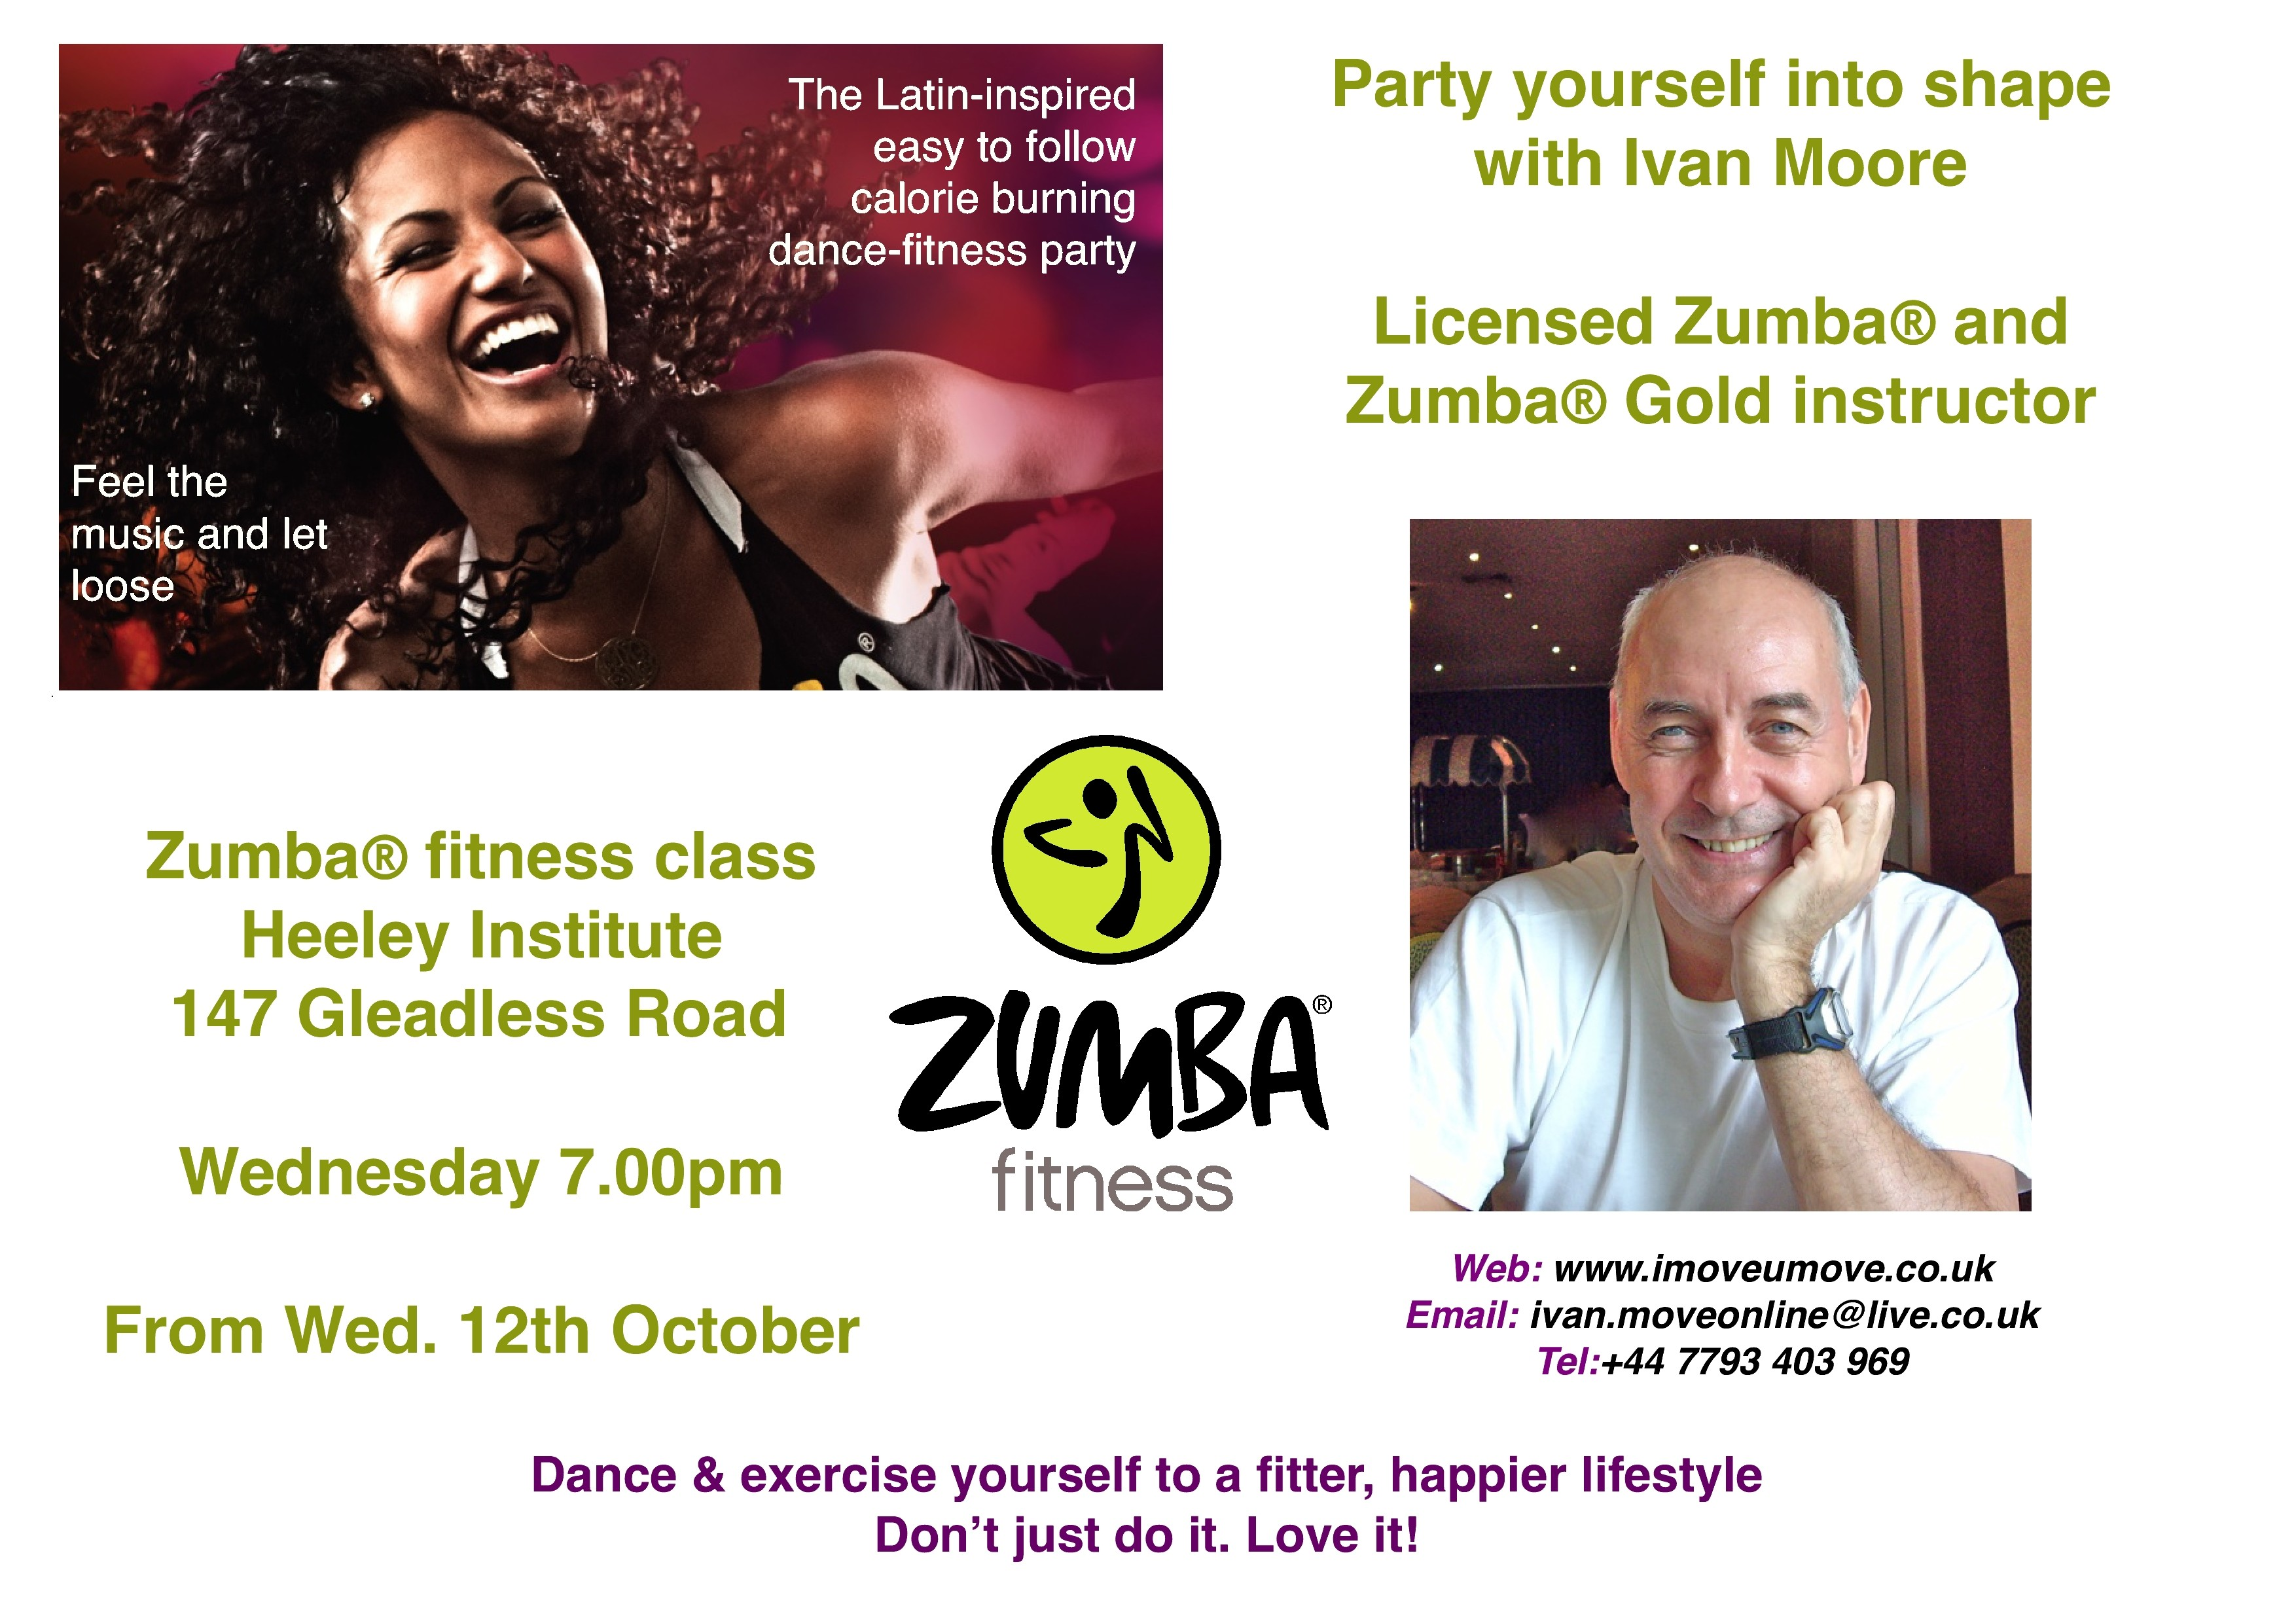 Zumba flyer design zumba flyers - Flyer Design For Zumba With Kheshan Print Or Packaging